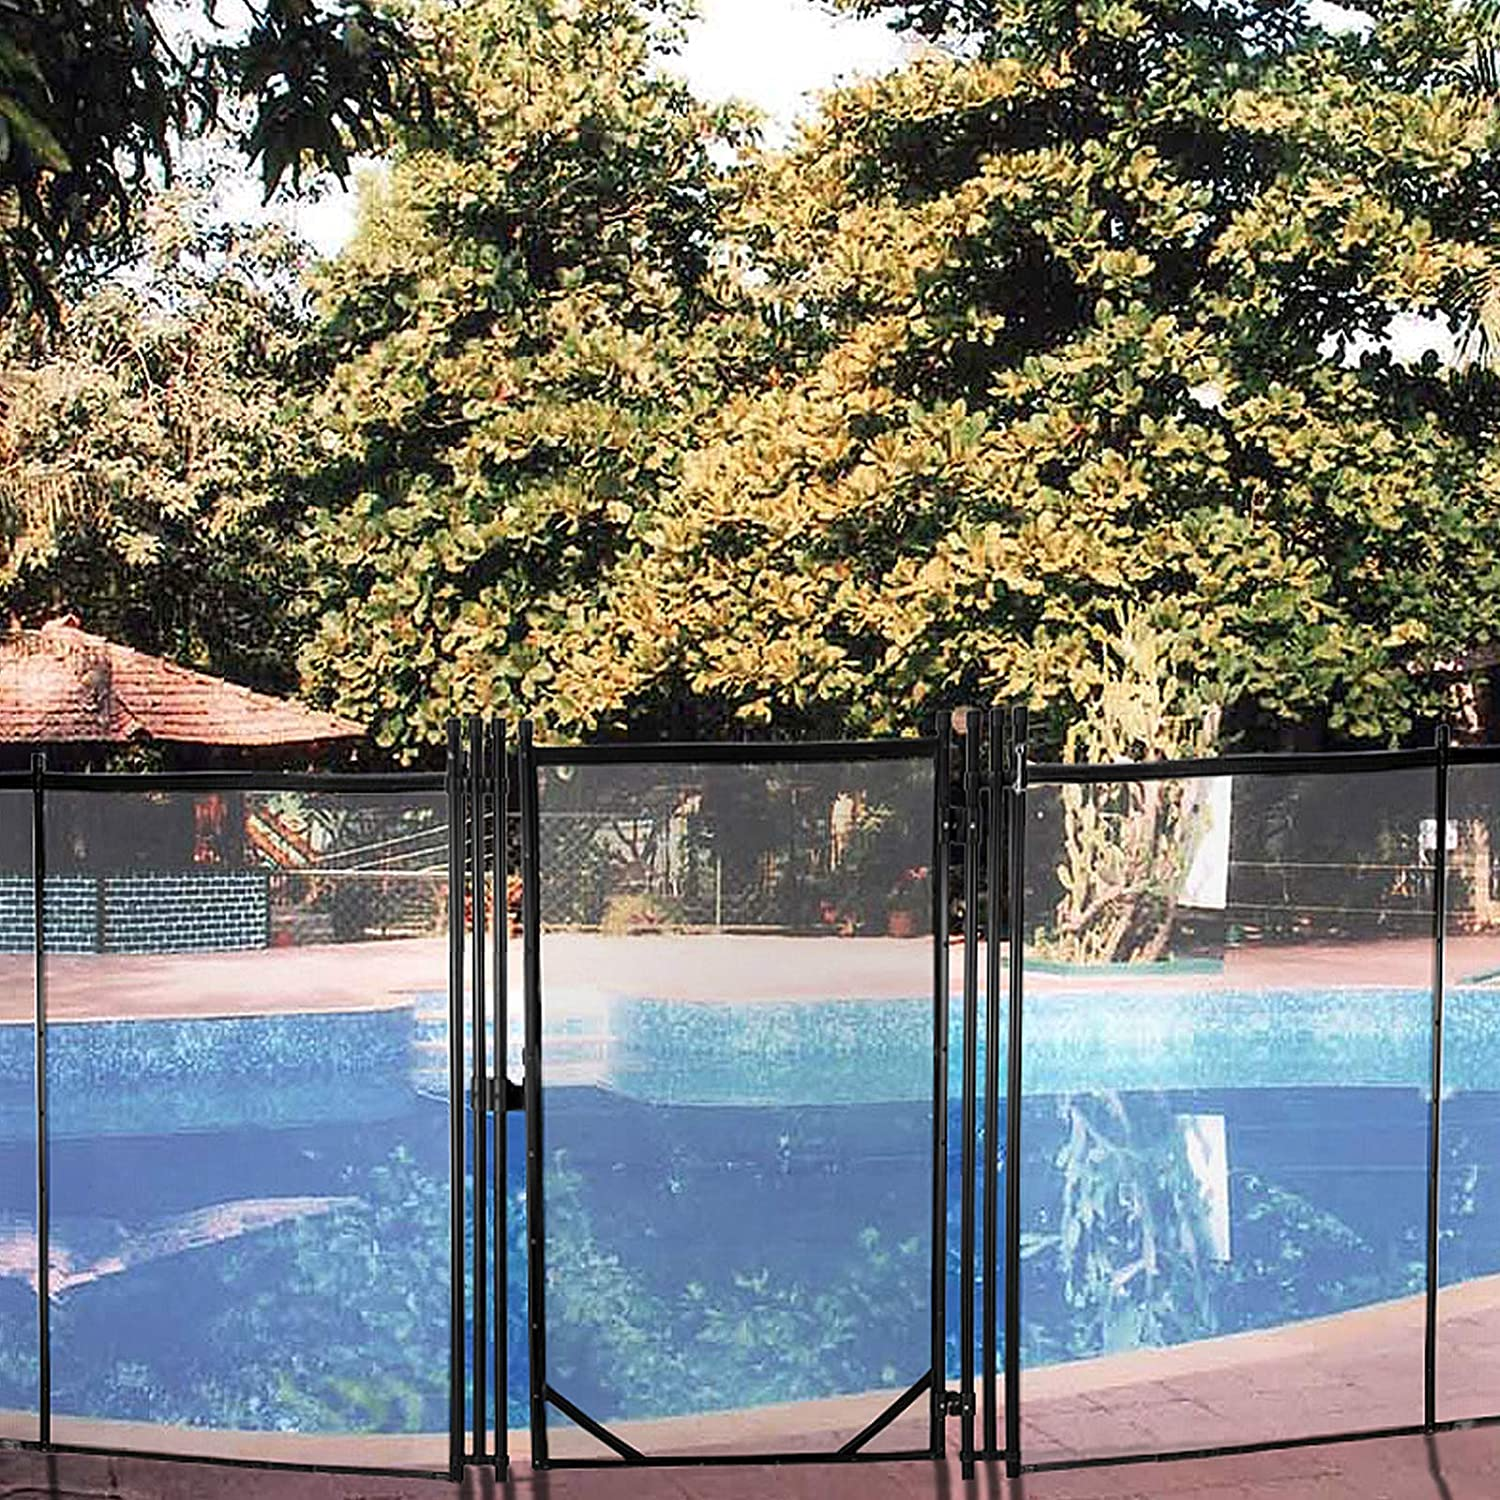 Happybuy Removable Pool Fresno Mall Safety Fence Manual Lock 4x2.5FT Max 66% OFF Door